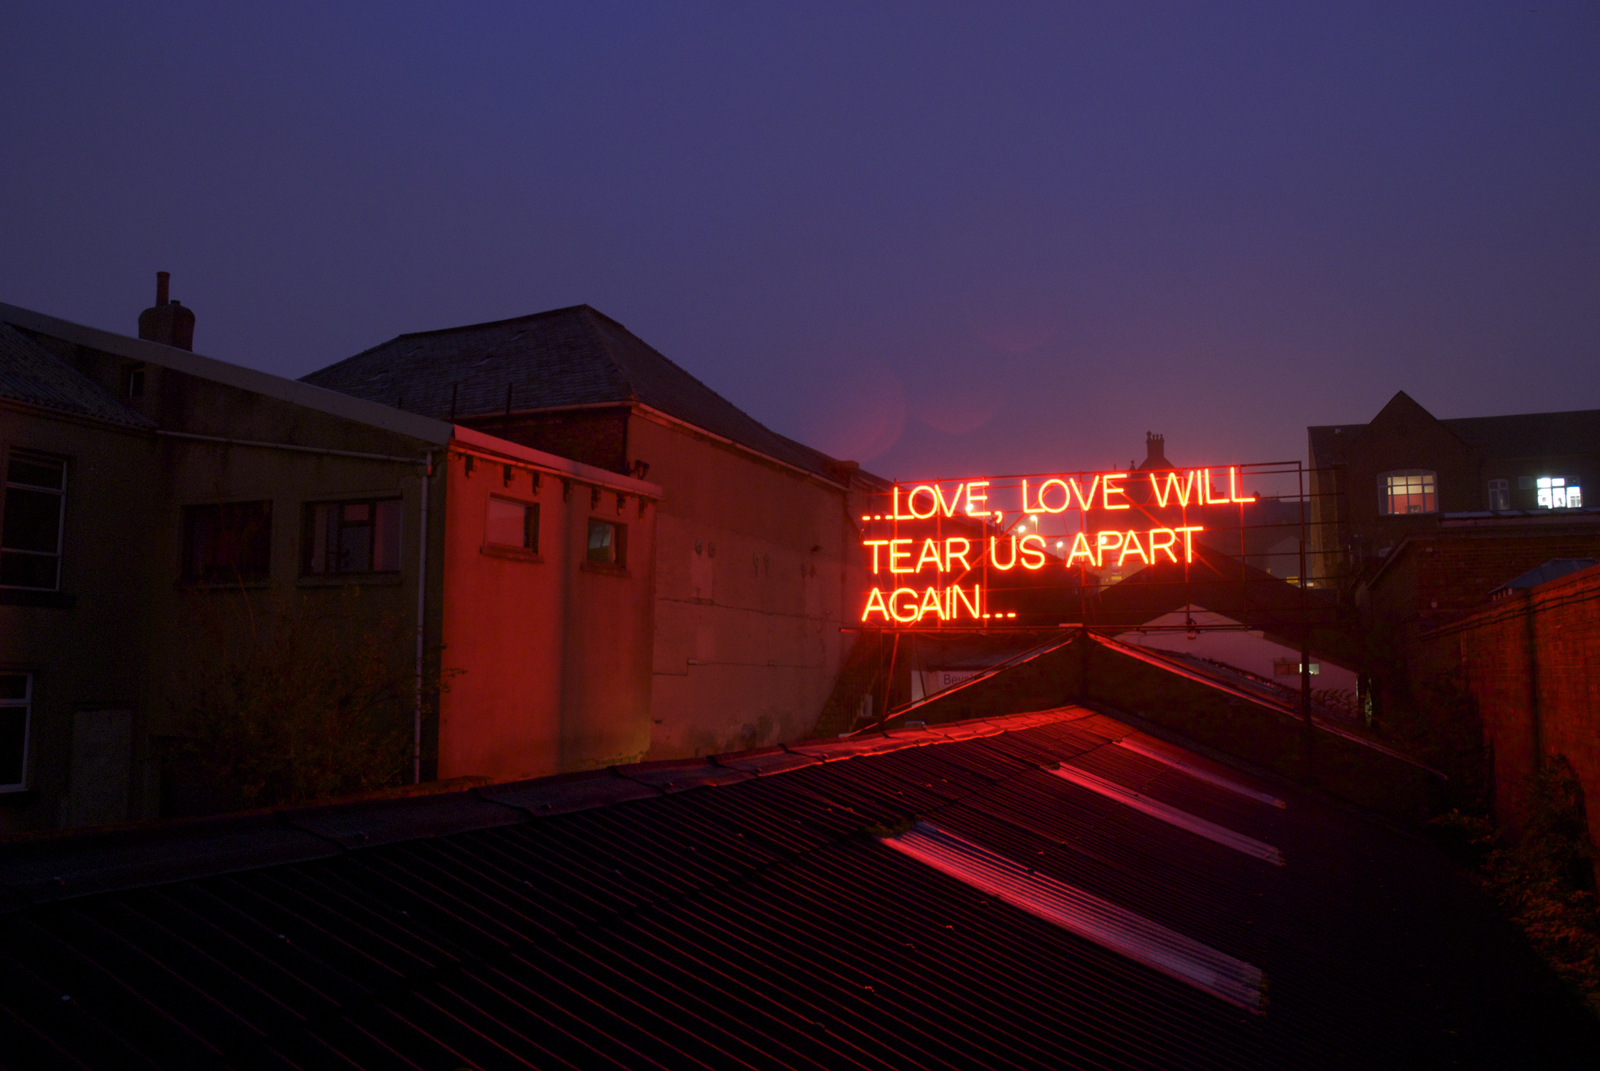 12 Months of Neon Love | Victoria Lucas & Richard William Wheater | 2011-12 | installation | neon | installation view | image: courtesy of the artist